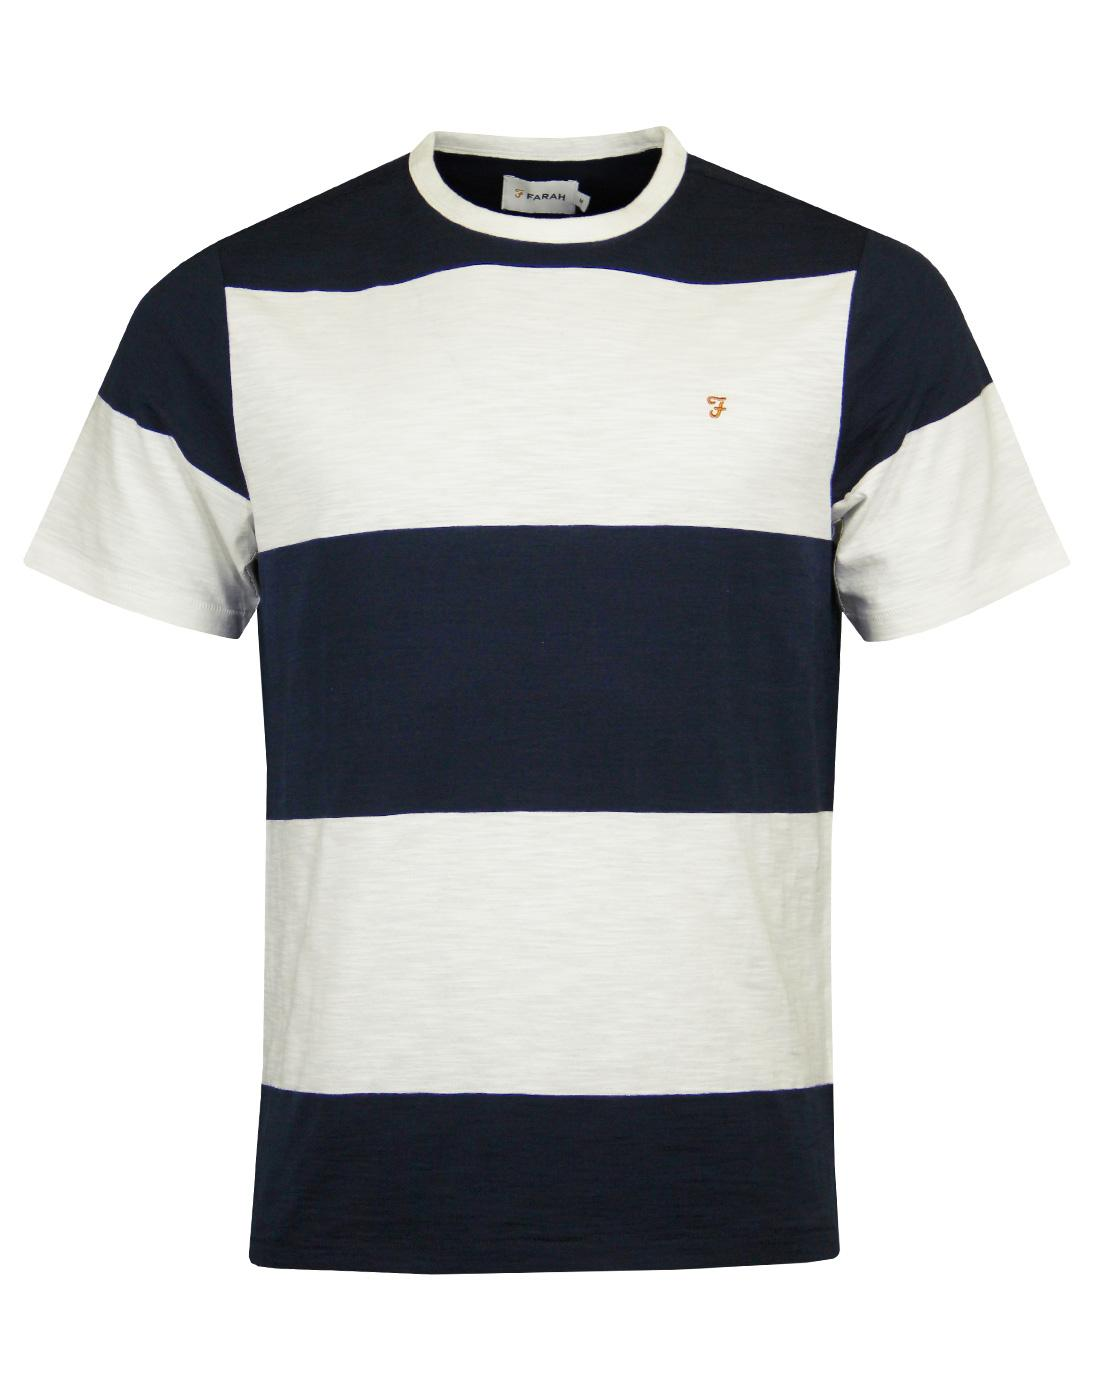 Woolacombe FARAH Retro Mod Block Stripe T-Shirt TN